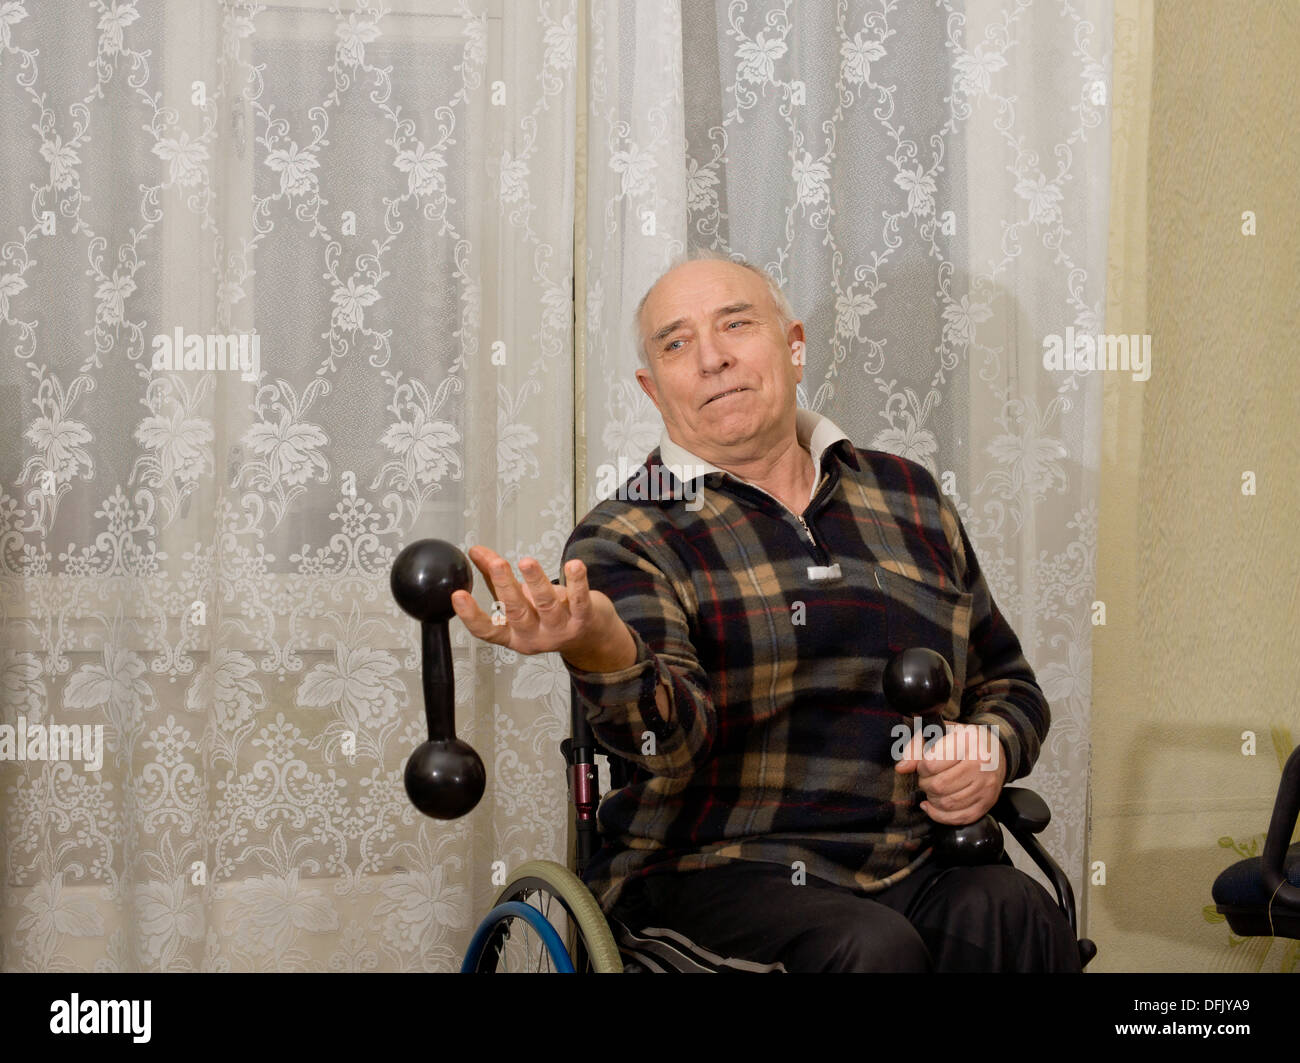 Elderly man in a wheelchair exercising with a pair of dumbbells looking frustrated as he drops one by mistake, with copyspace - Stock Image